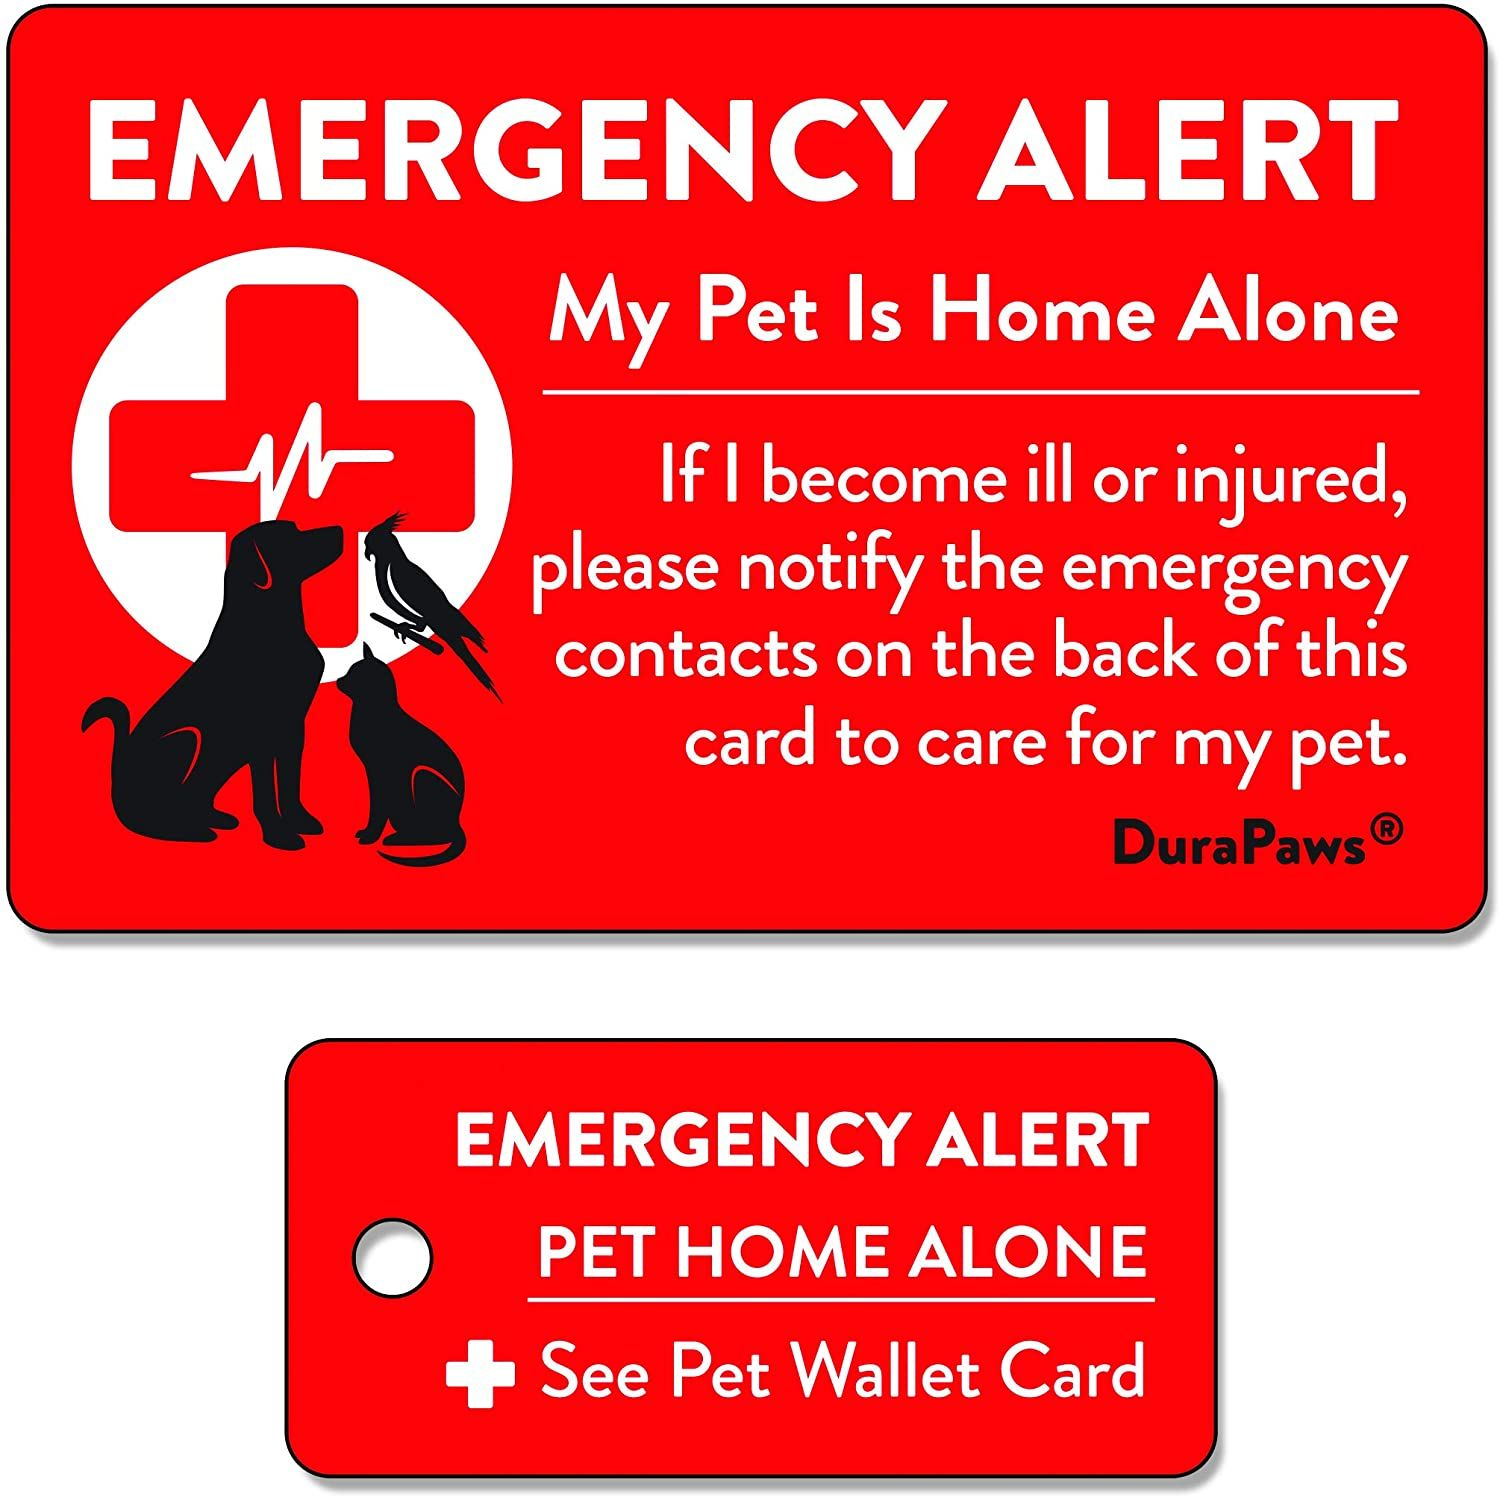 Durapaws Pets Dogs Cats Are Home Alone Alert Emergency Plastic Contact Wallet Card And Key Tag In 2020 Emergency Card Wallet Life Guide